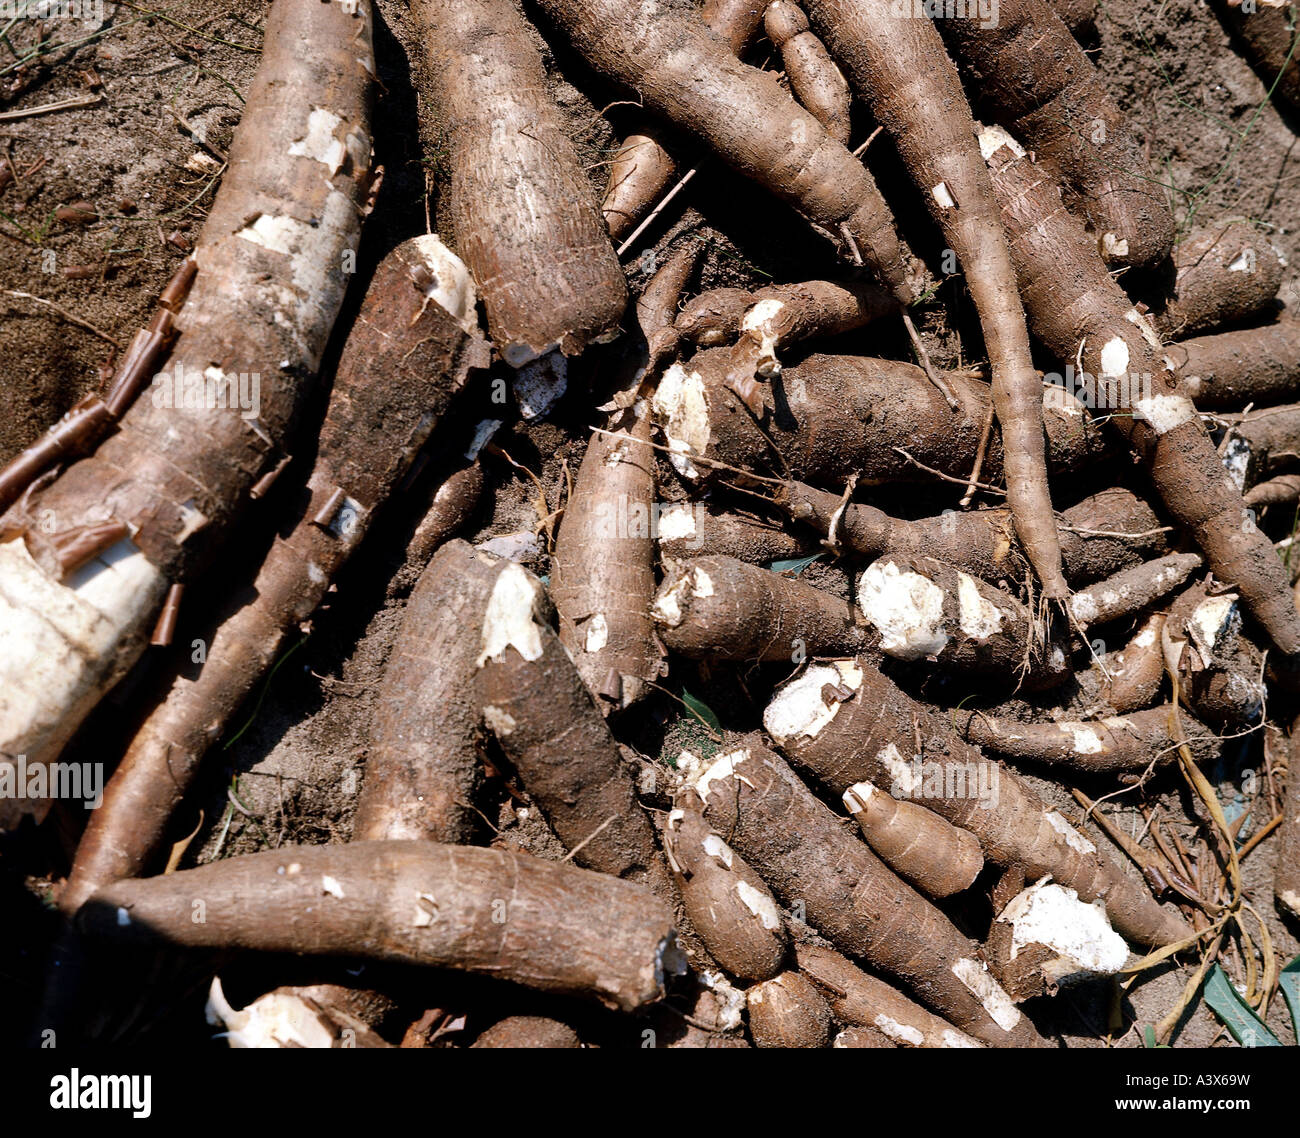 Cassava a reliable food, cash crop in these hot, dry times